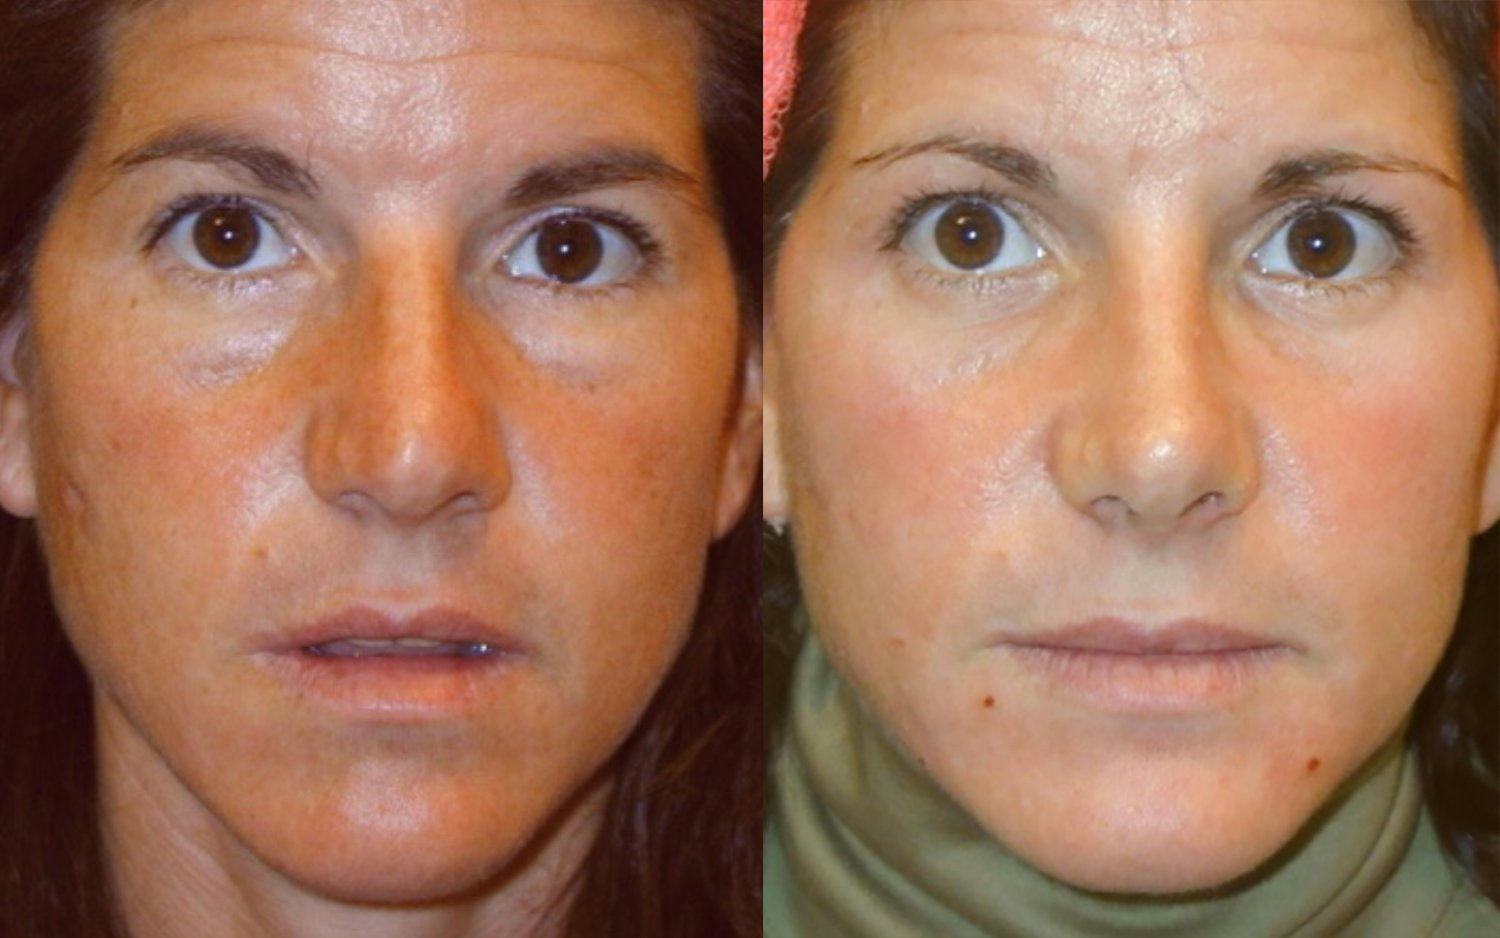 rhinoplasty, small hump and tip reduction